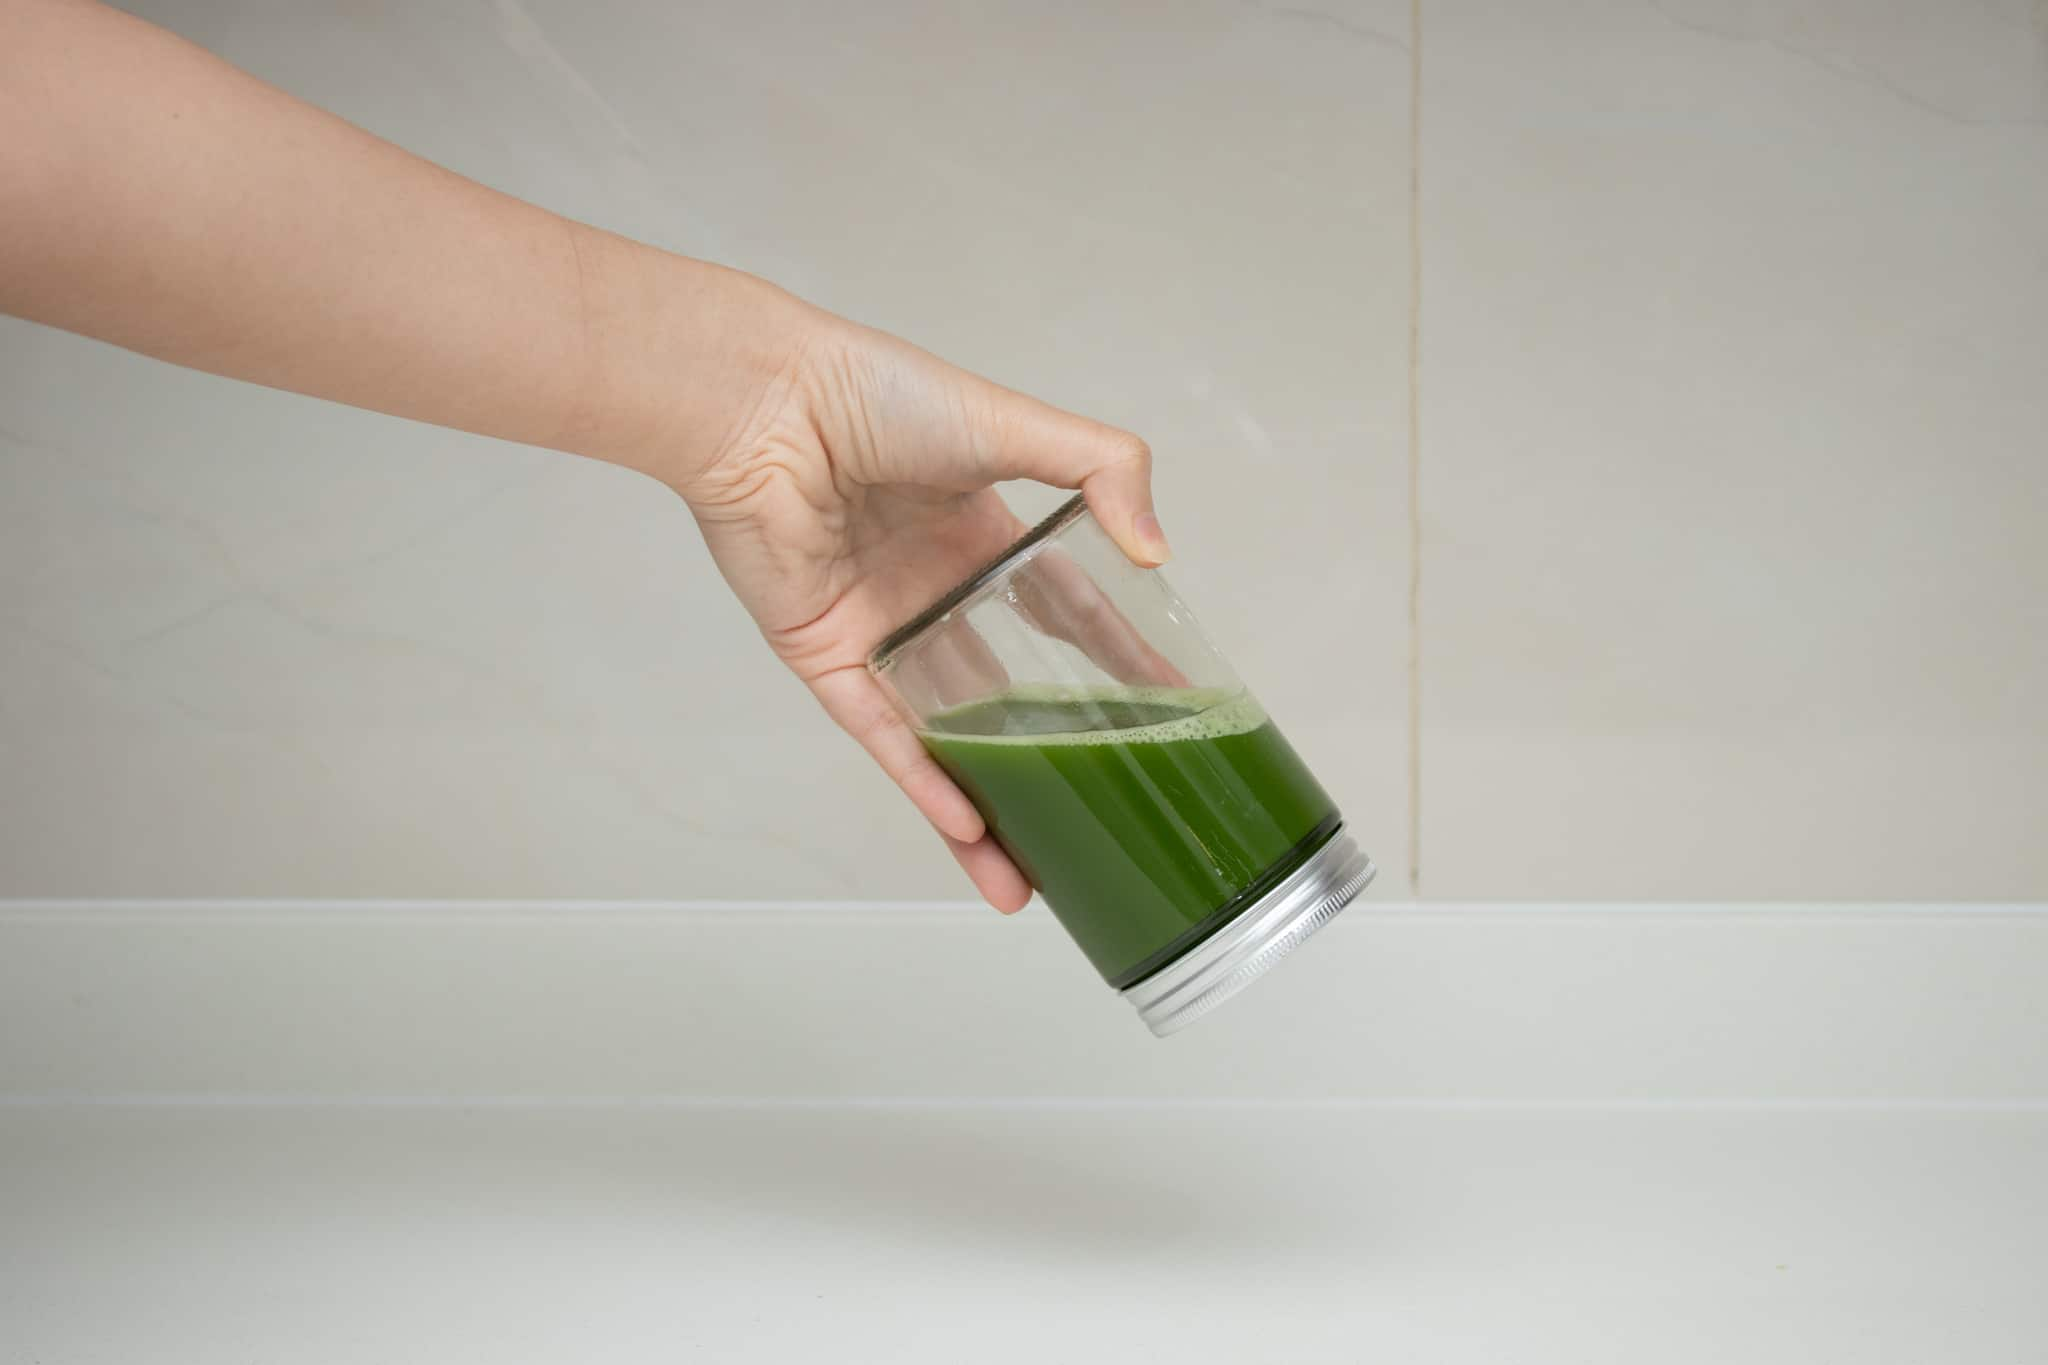 making matcha tea by shaking in a bottle